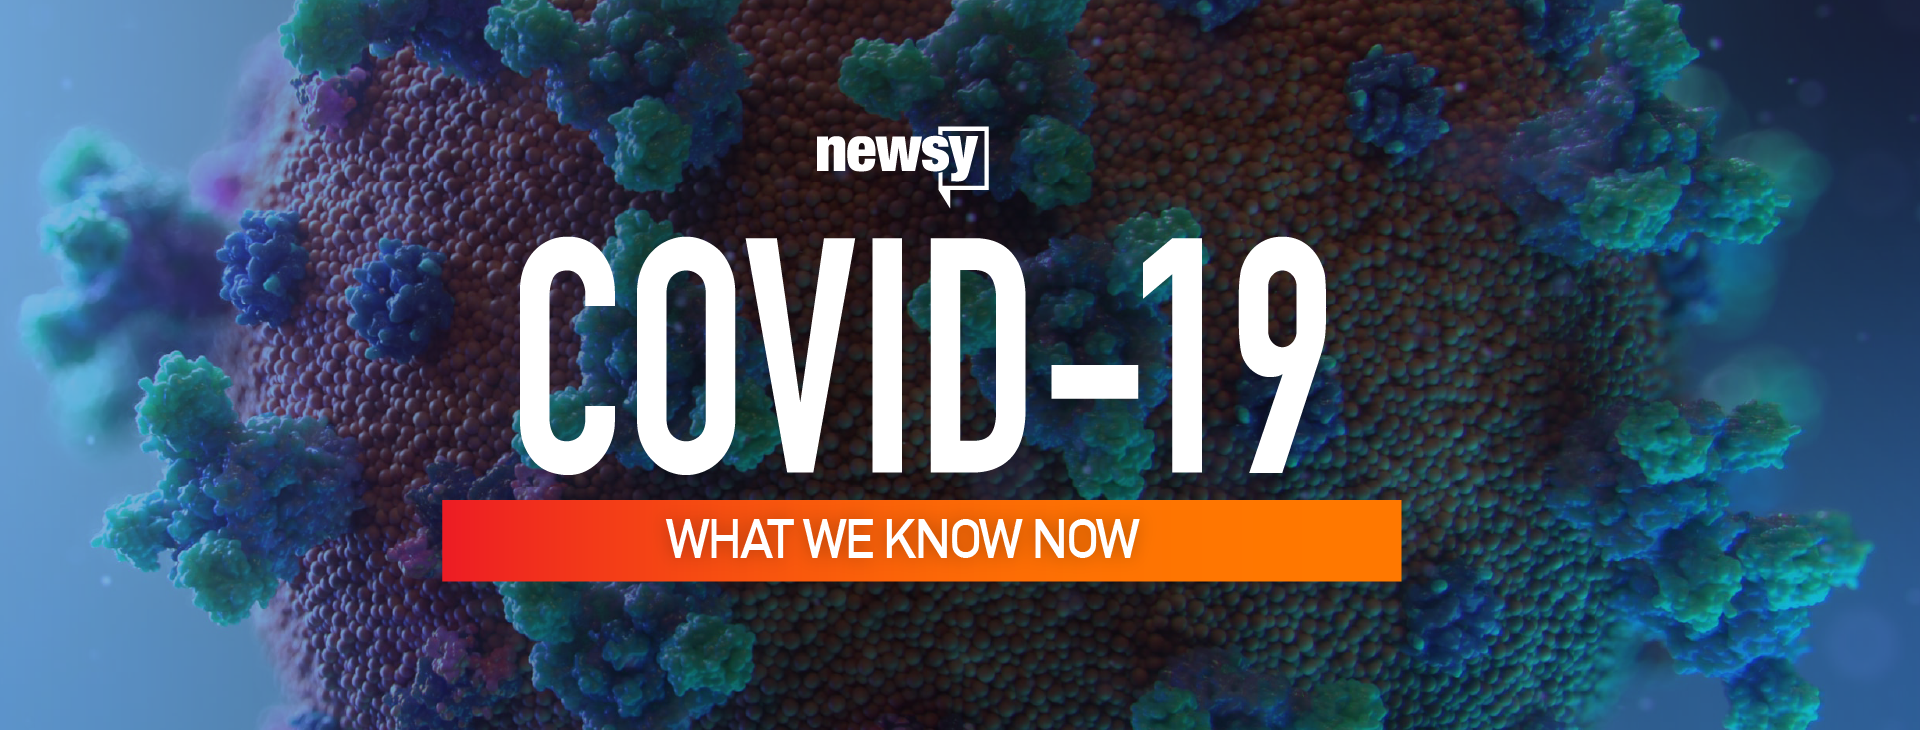 COVID: What We Know Now